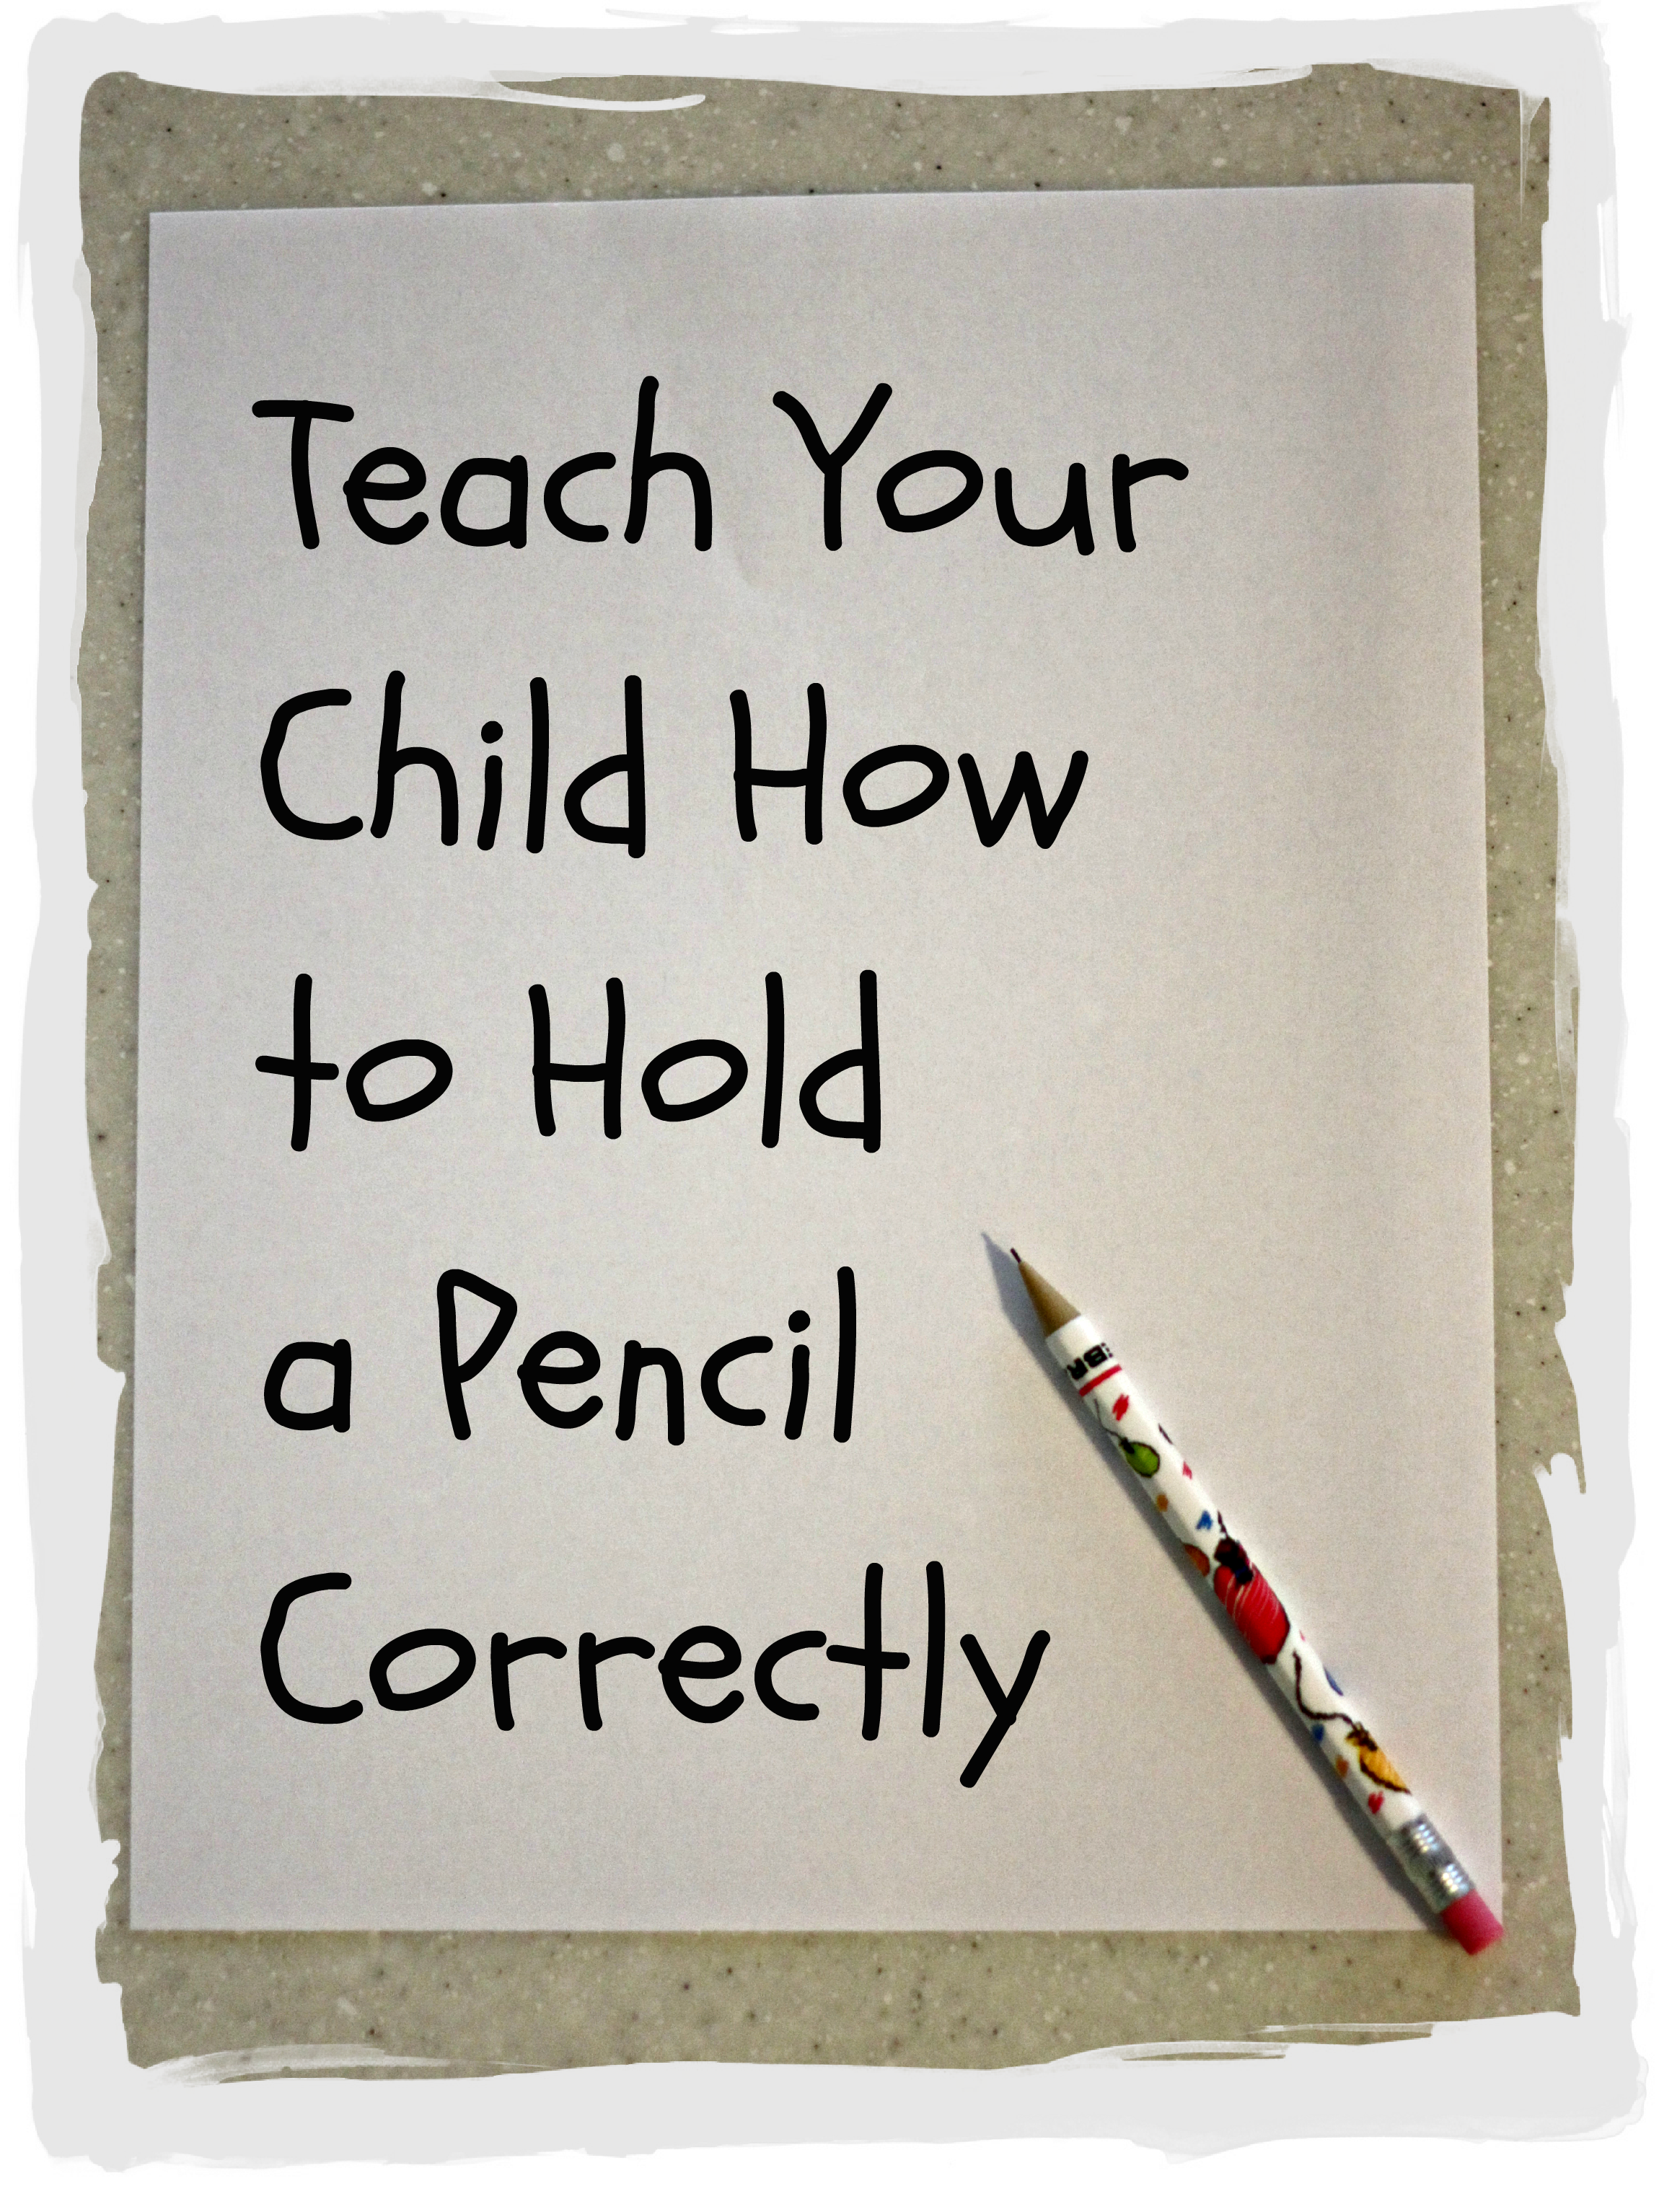 Correct pencil grip i can teach my child learning thecheapjerseys Image collections